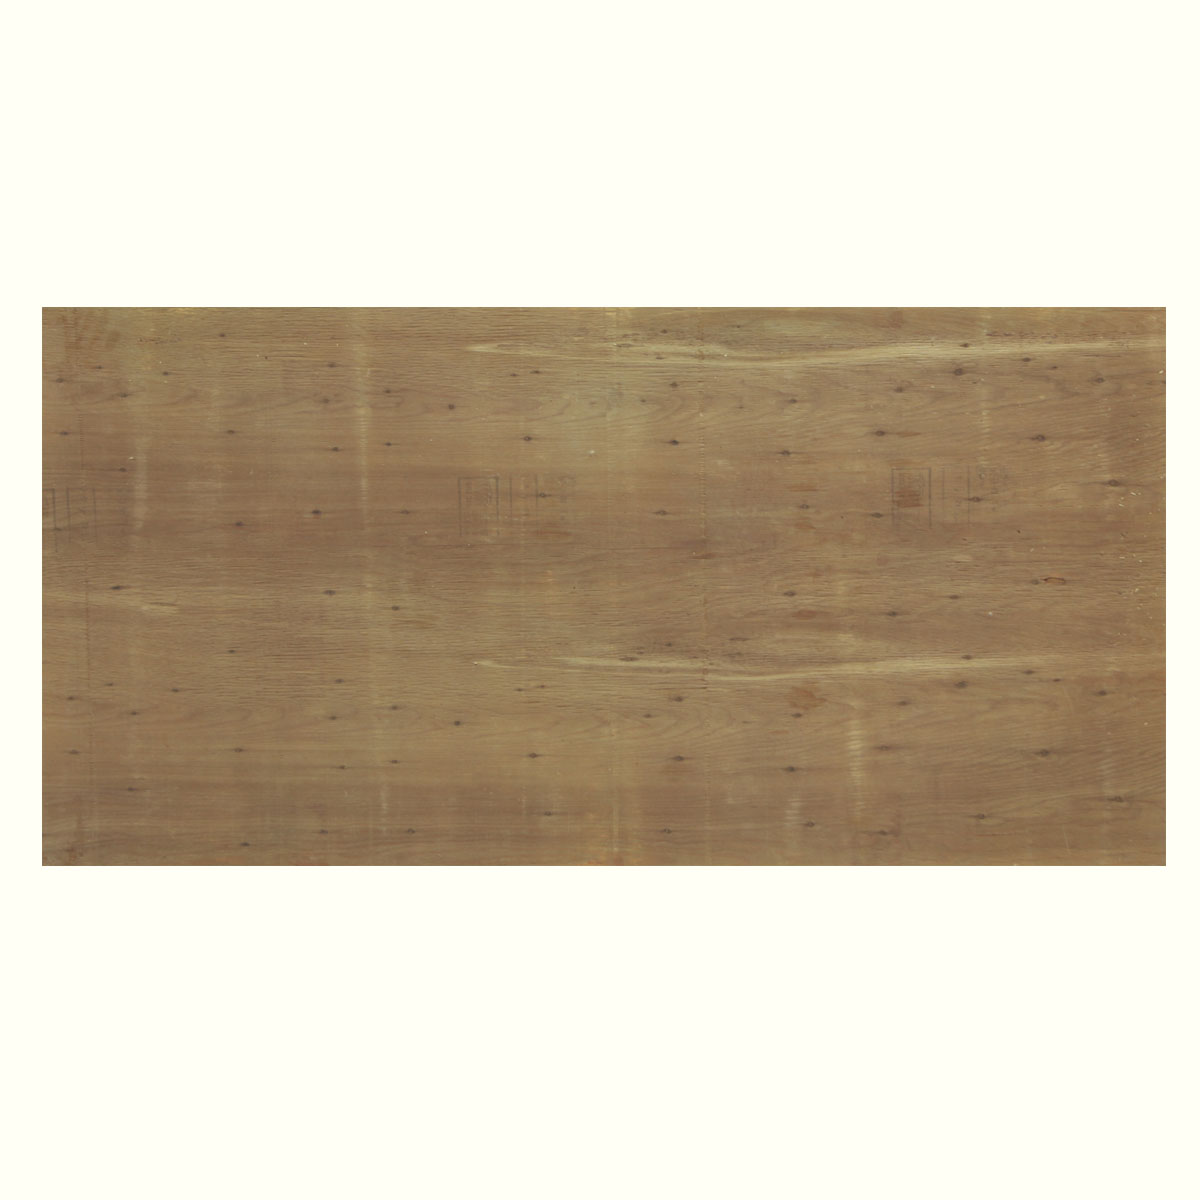 CCA Treated Plywood - 4 x 8 - 18.5 mm - 3/4-in